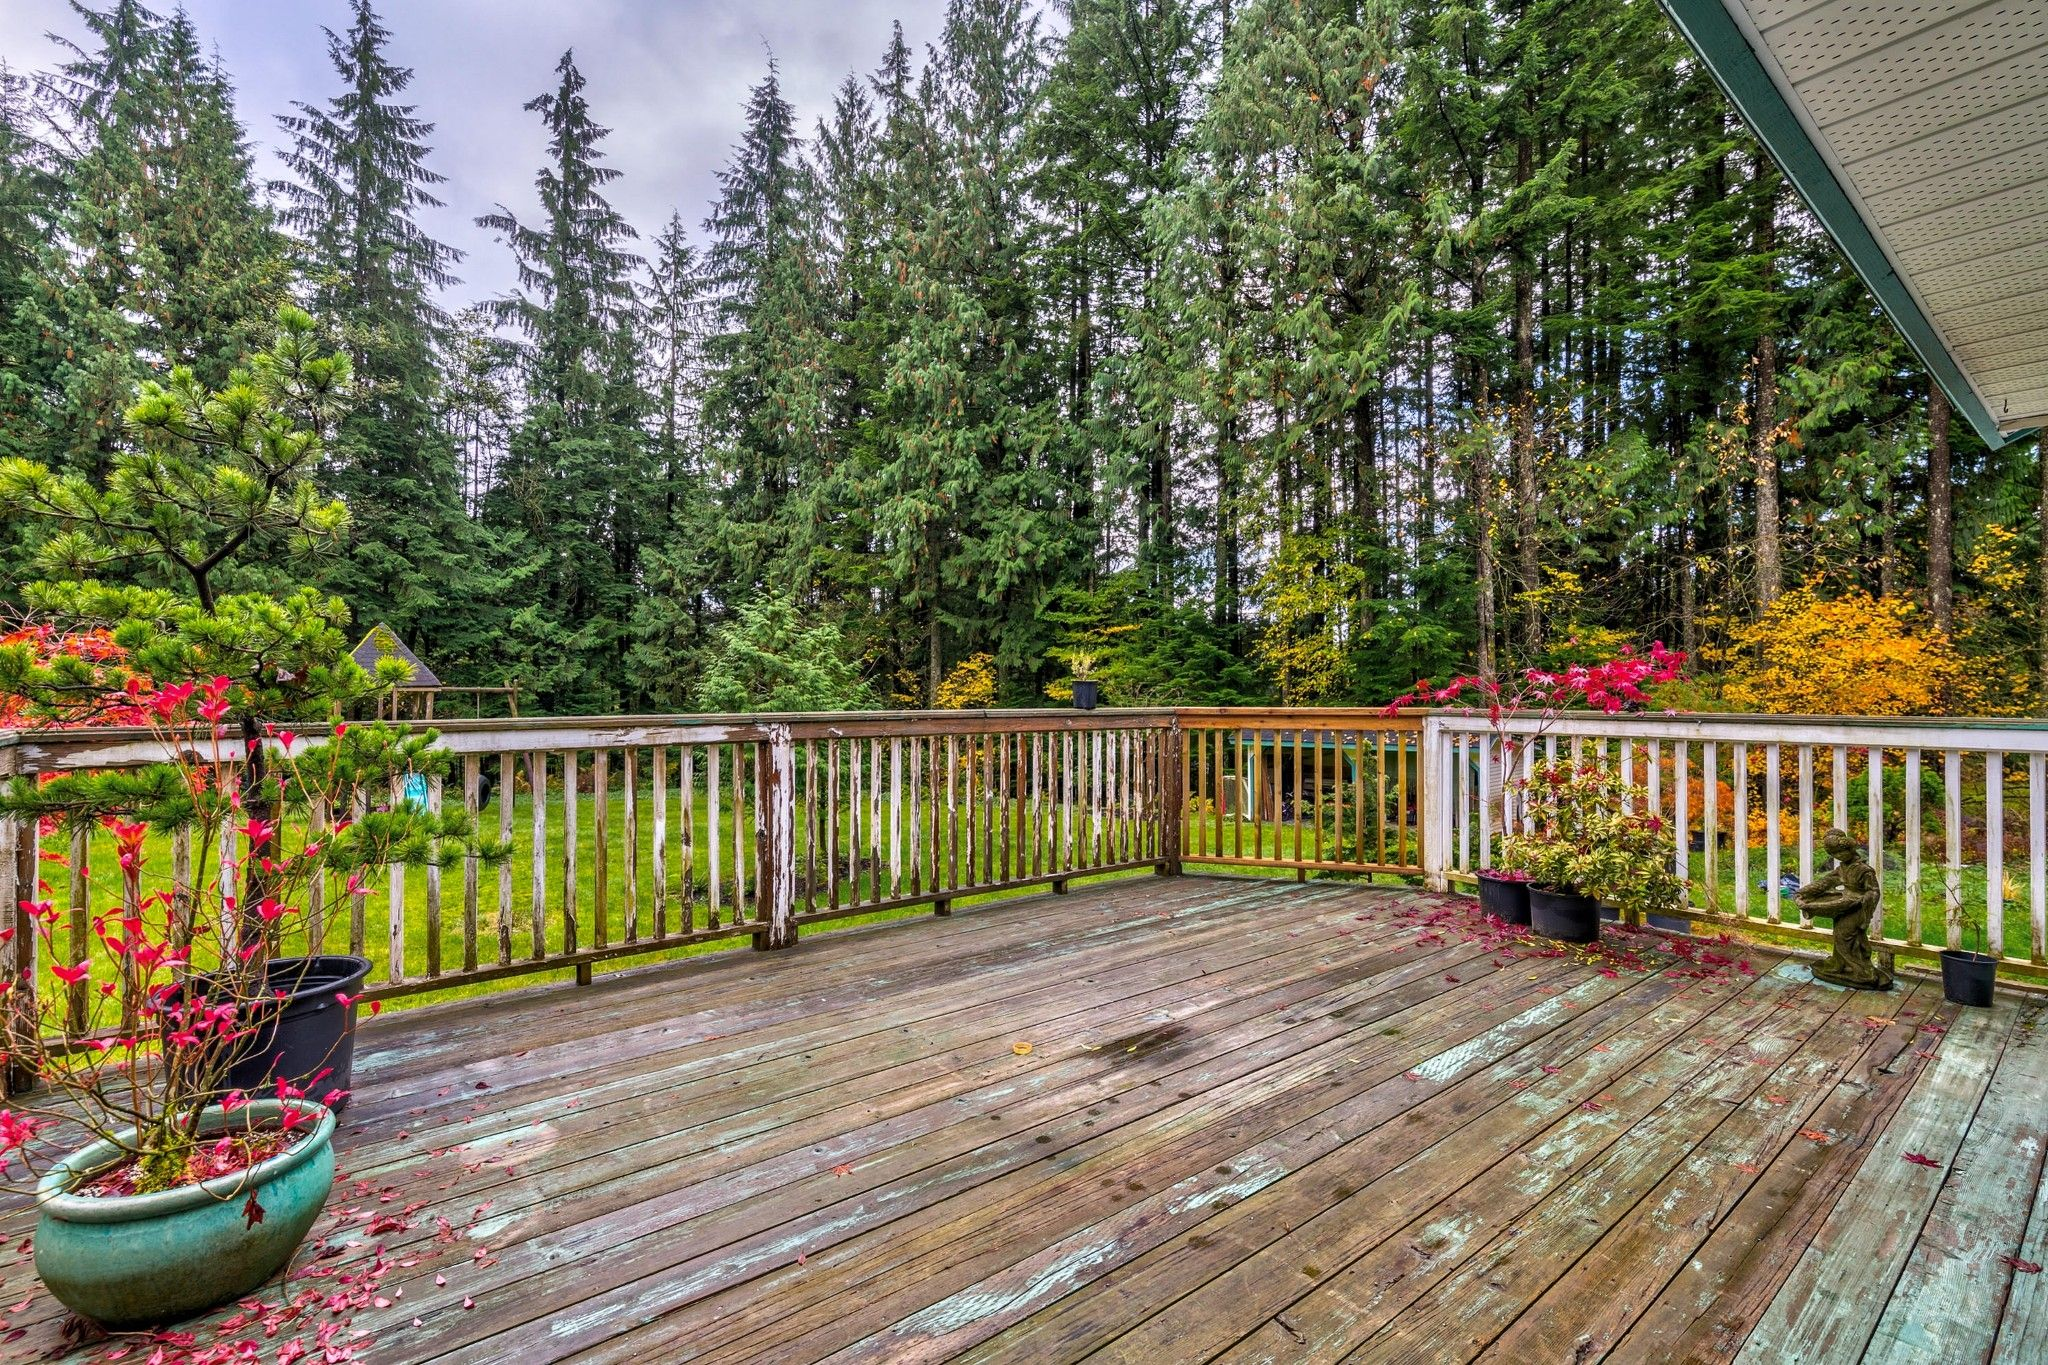 Photo 21: Photos: 27830 Laurel Place in Maple Ridge: Northeast House for sale : MLS®# R2415483